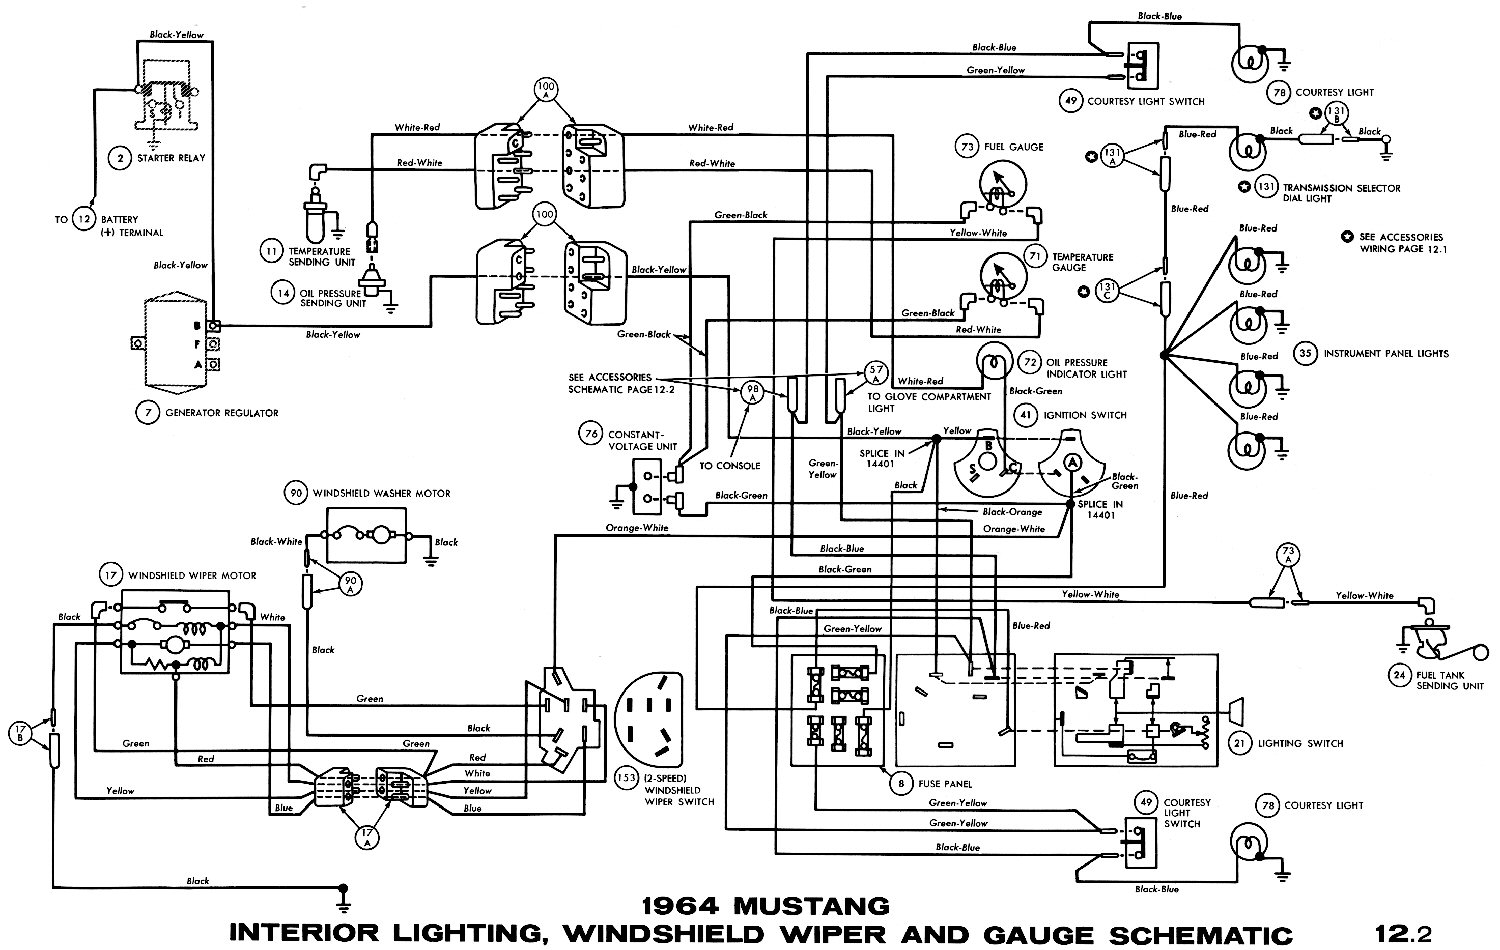 1964 mustang wiring diagrams average joe restoration rh averagejoerestoration com 2014 mustang wiring diagram download 2014 ford mustang wiring diagram